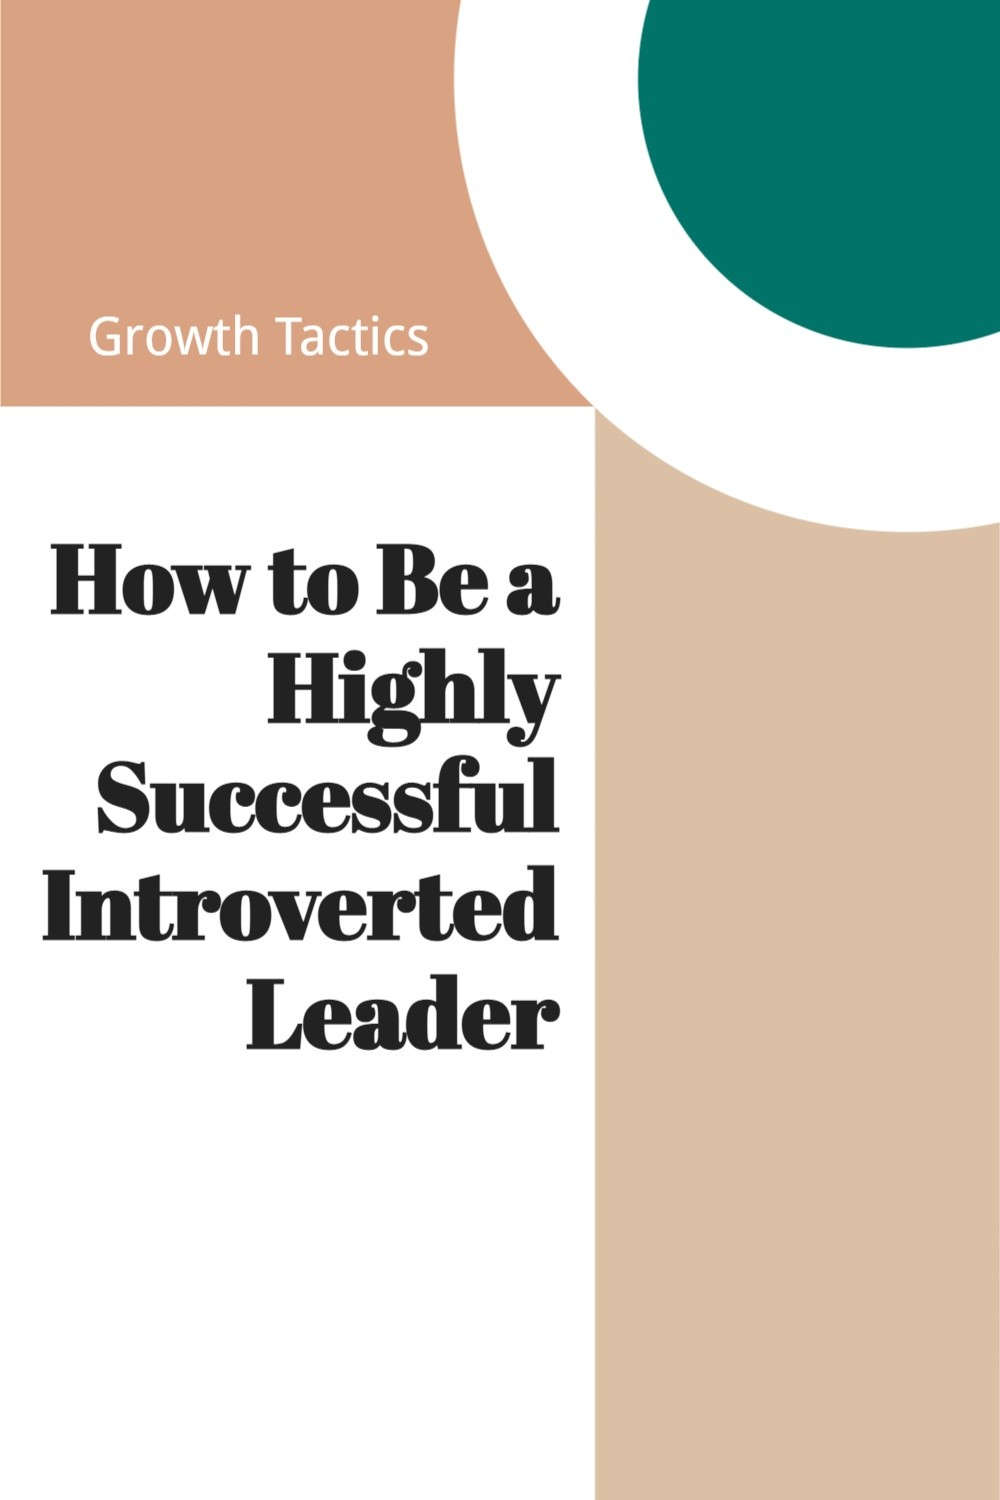 How to Be a Highly Successful Introverted Leader